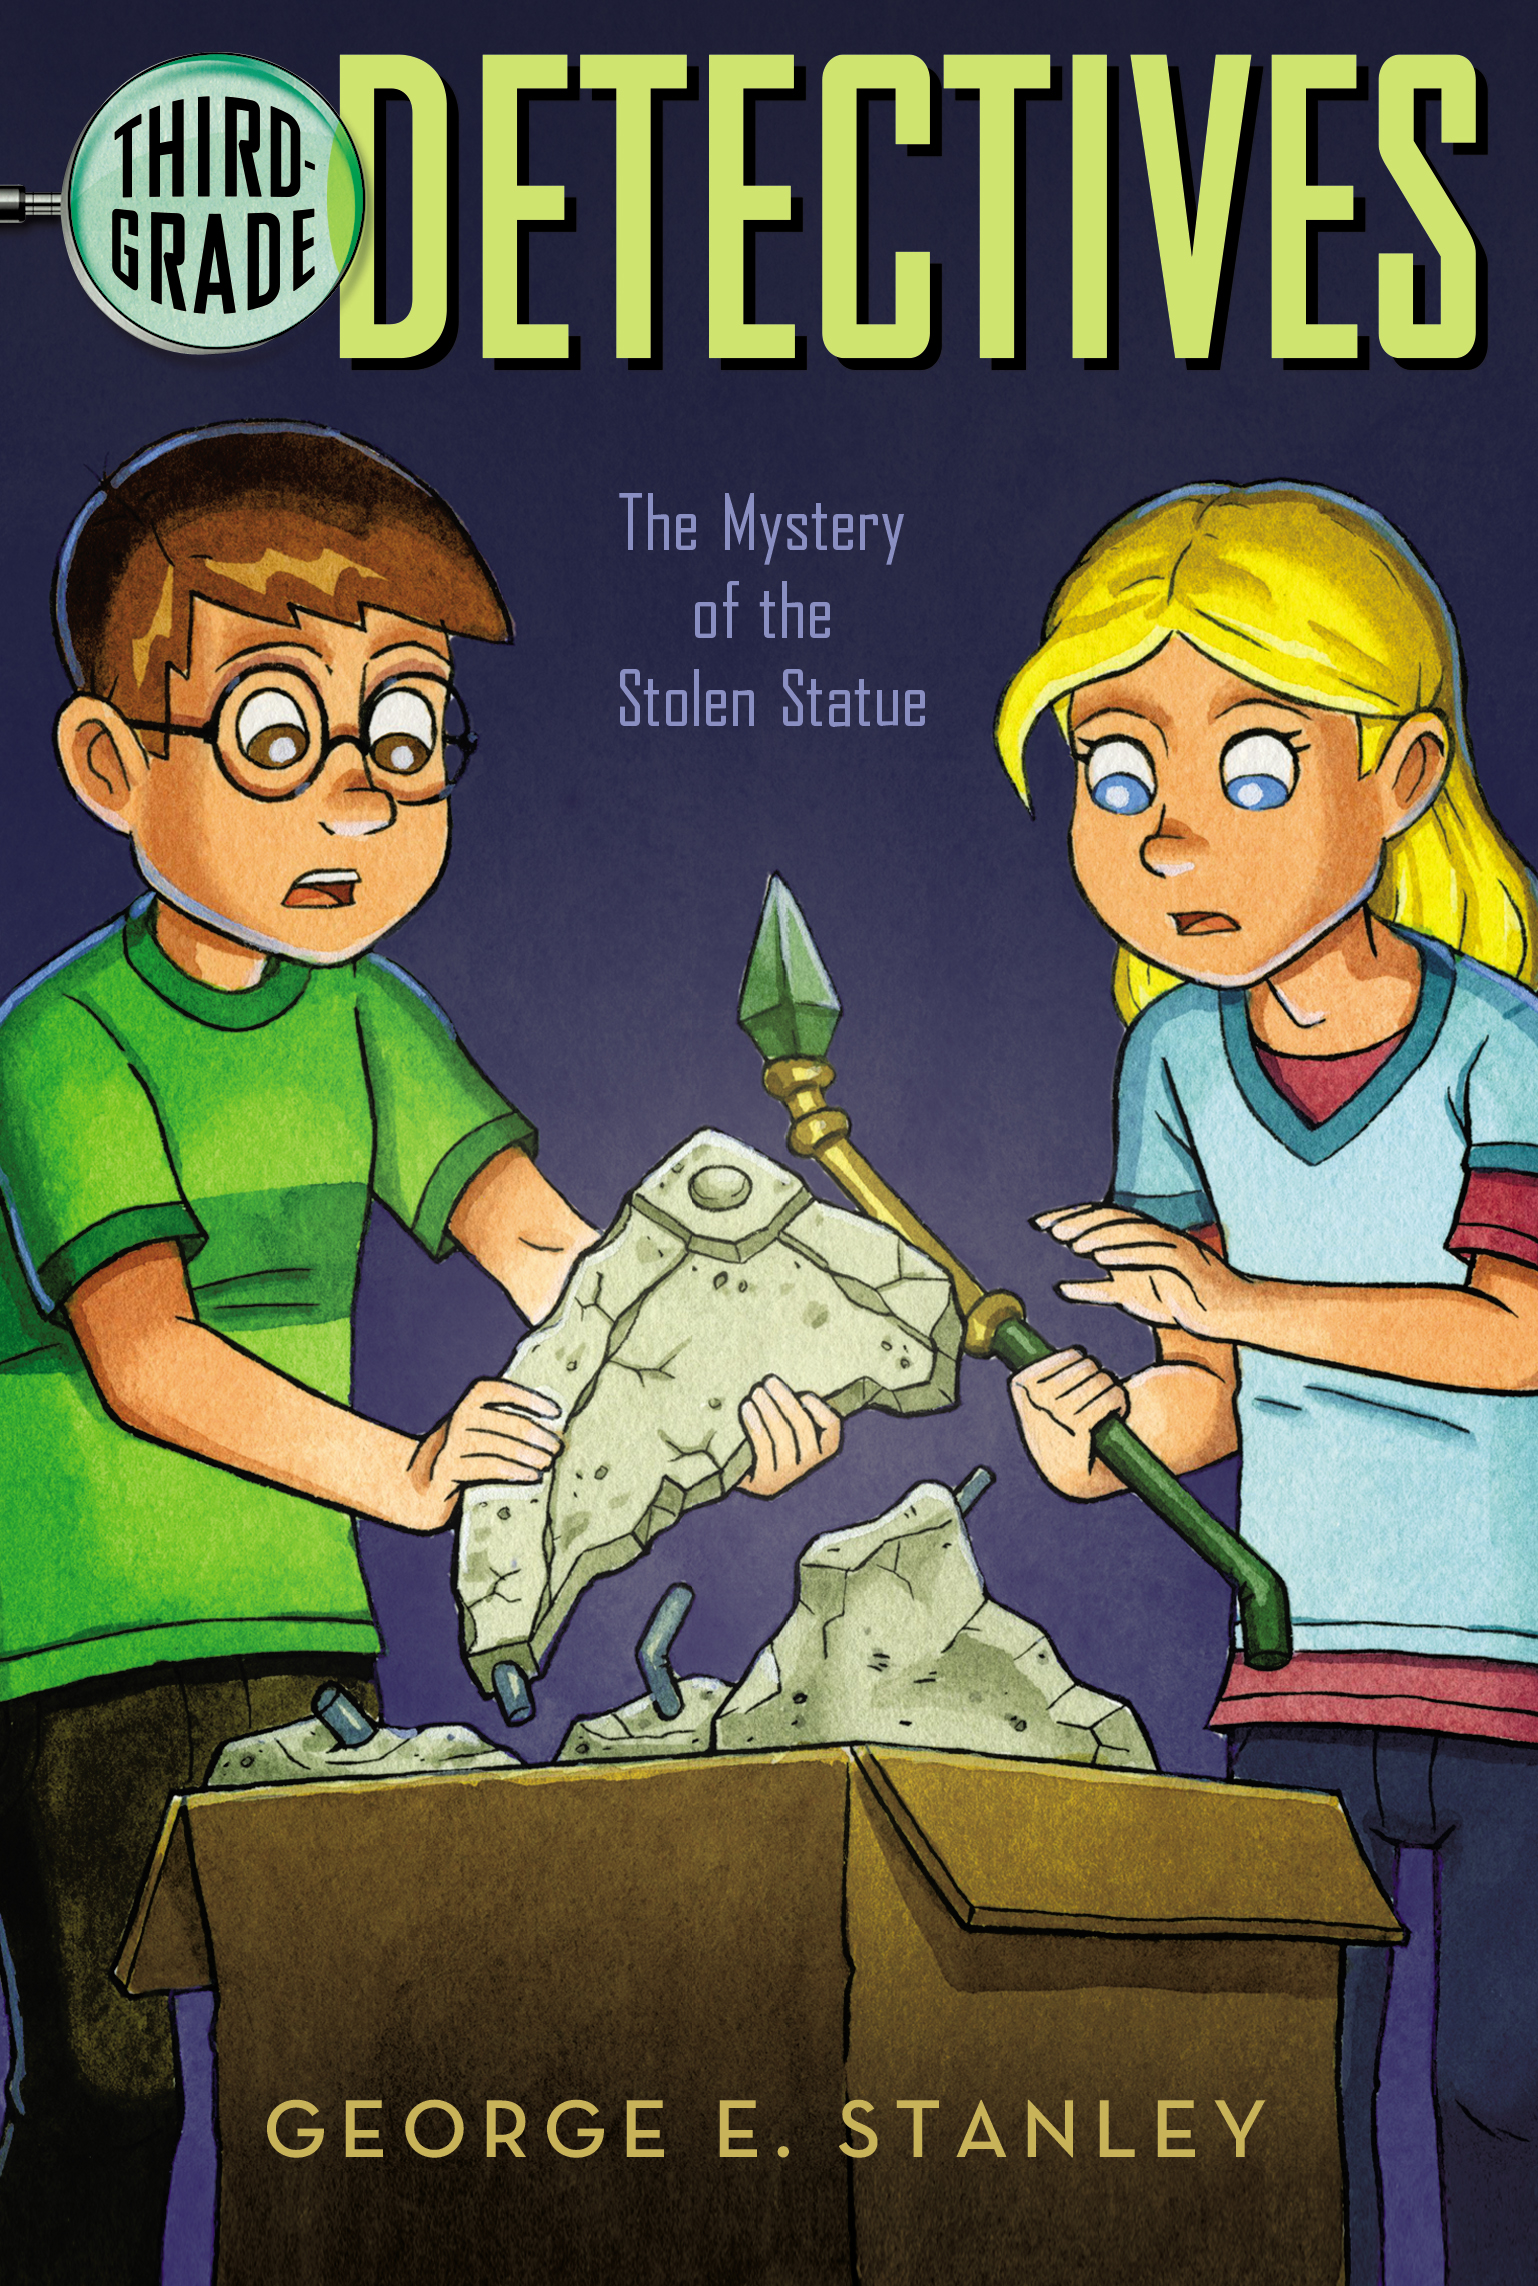 Mysteries for Third Grade Readers